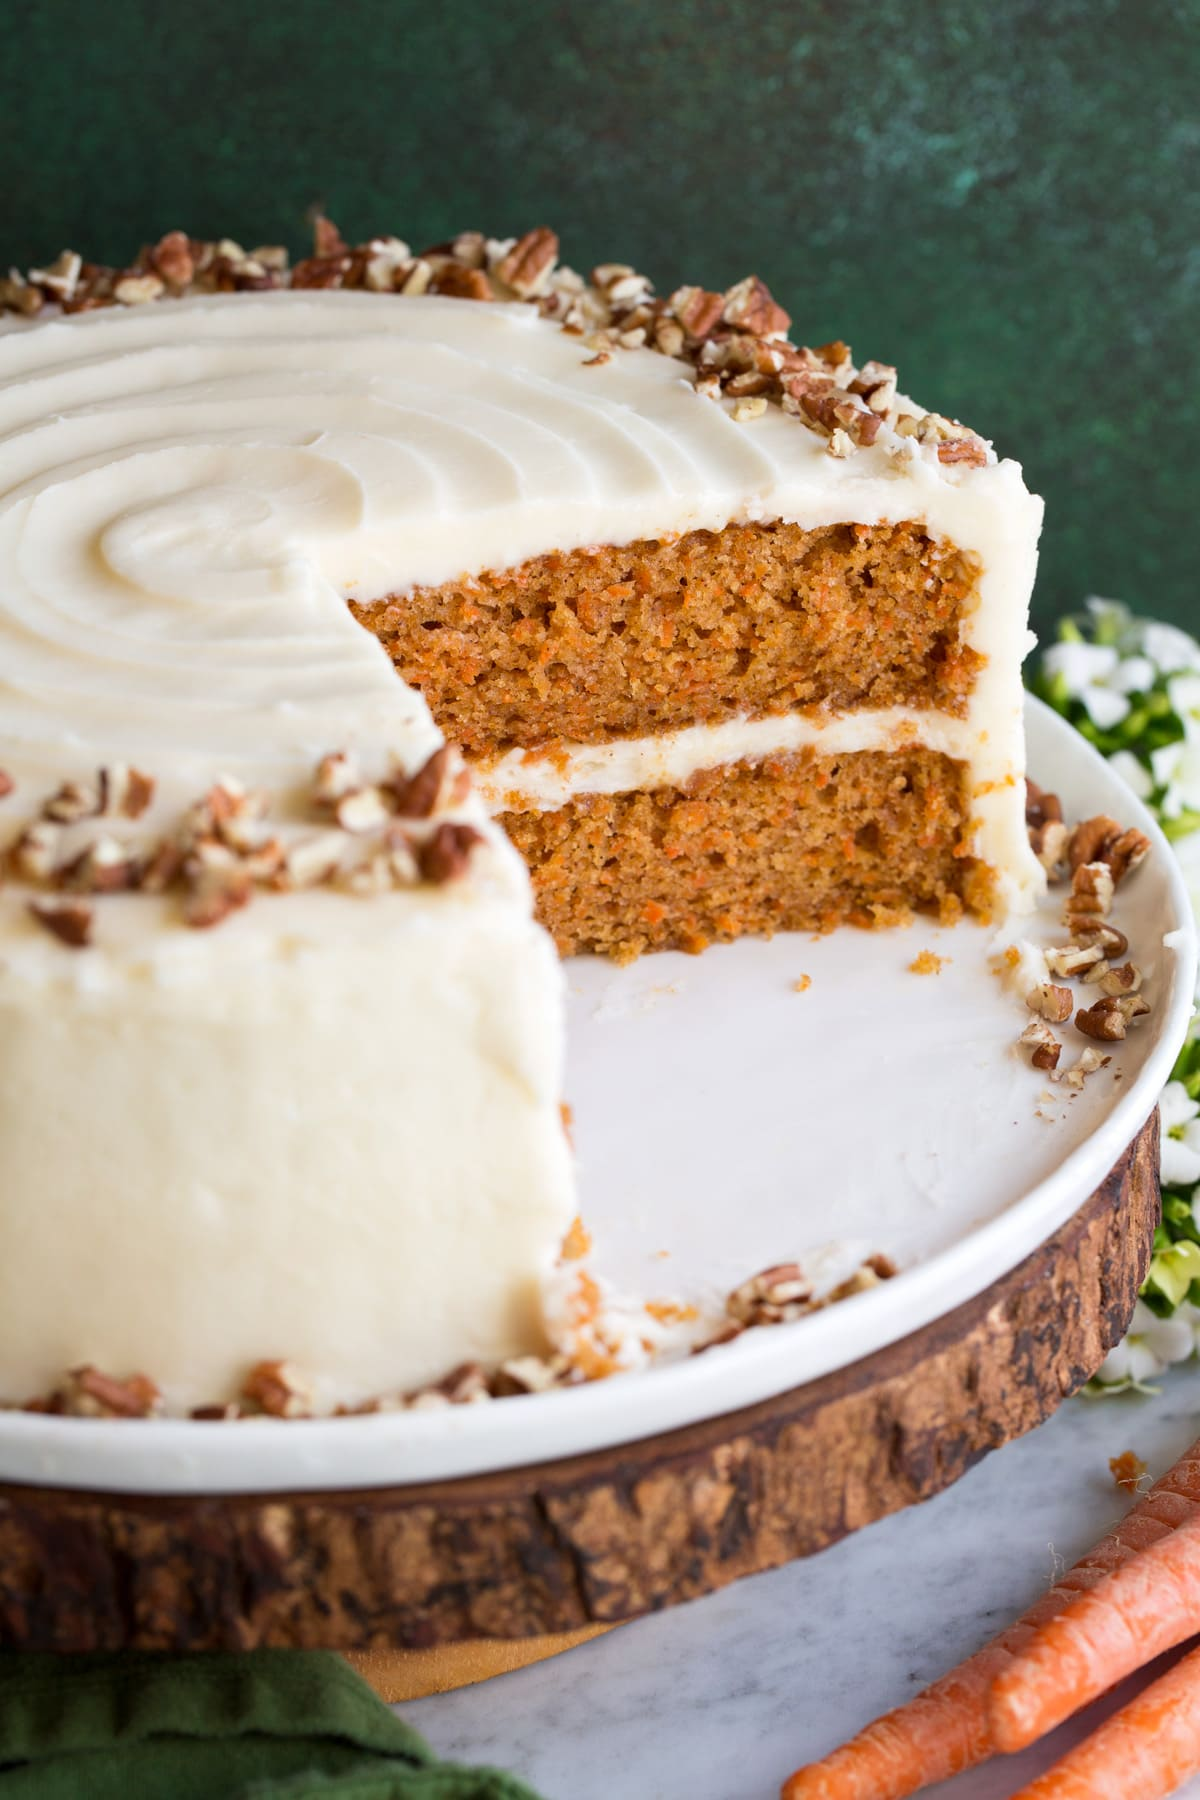 Close up image of carrot cake, sliced into to show interior.